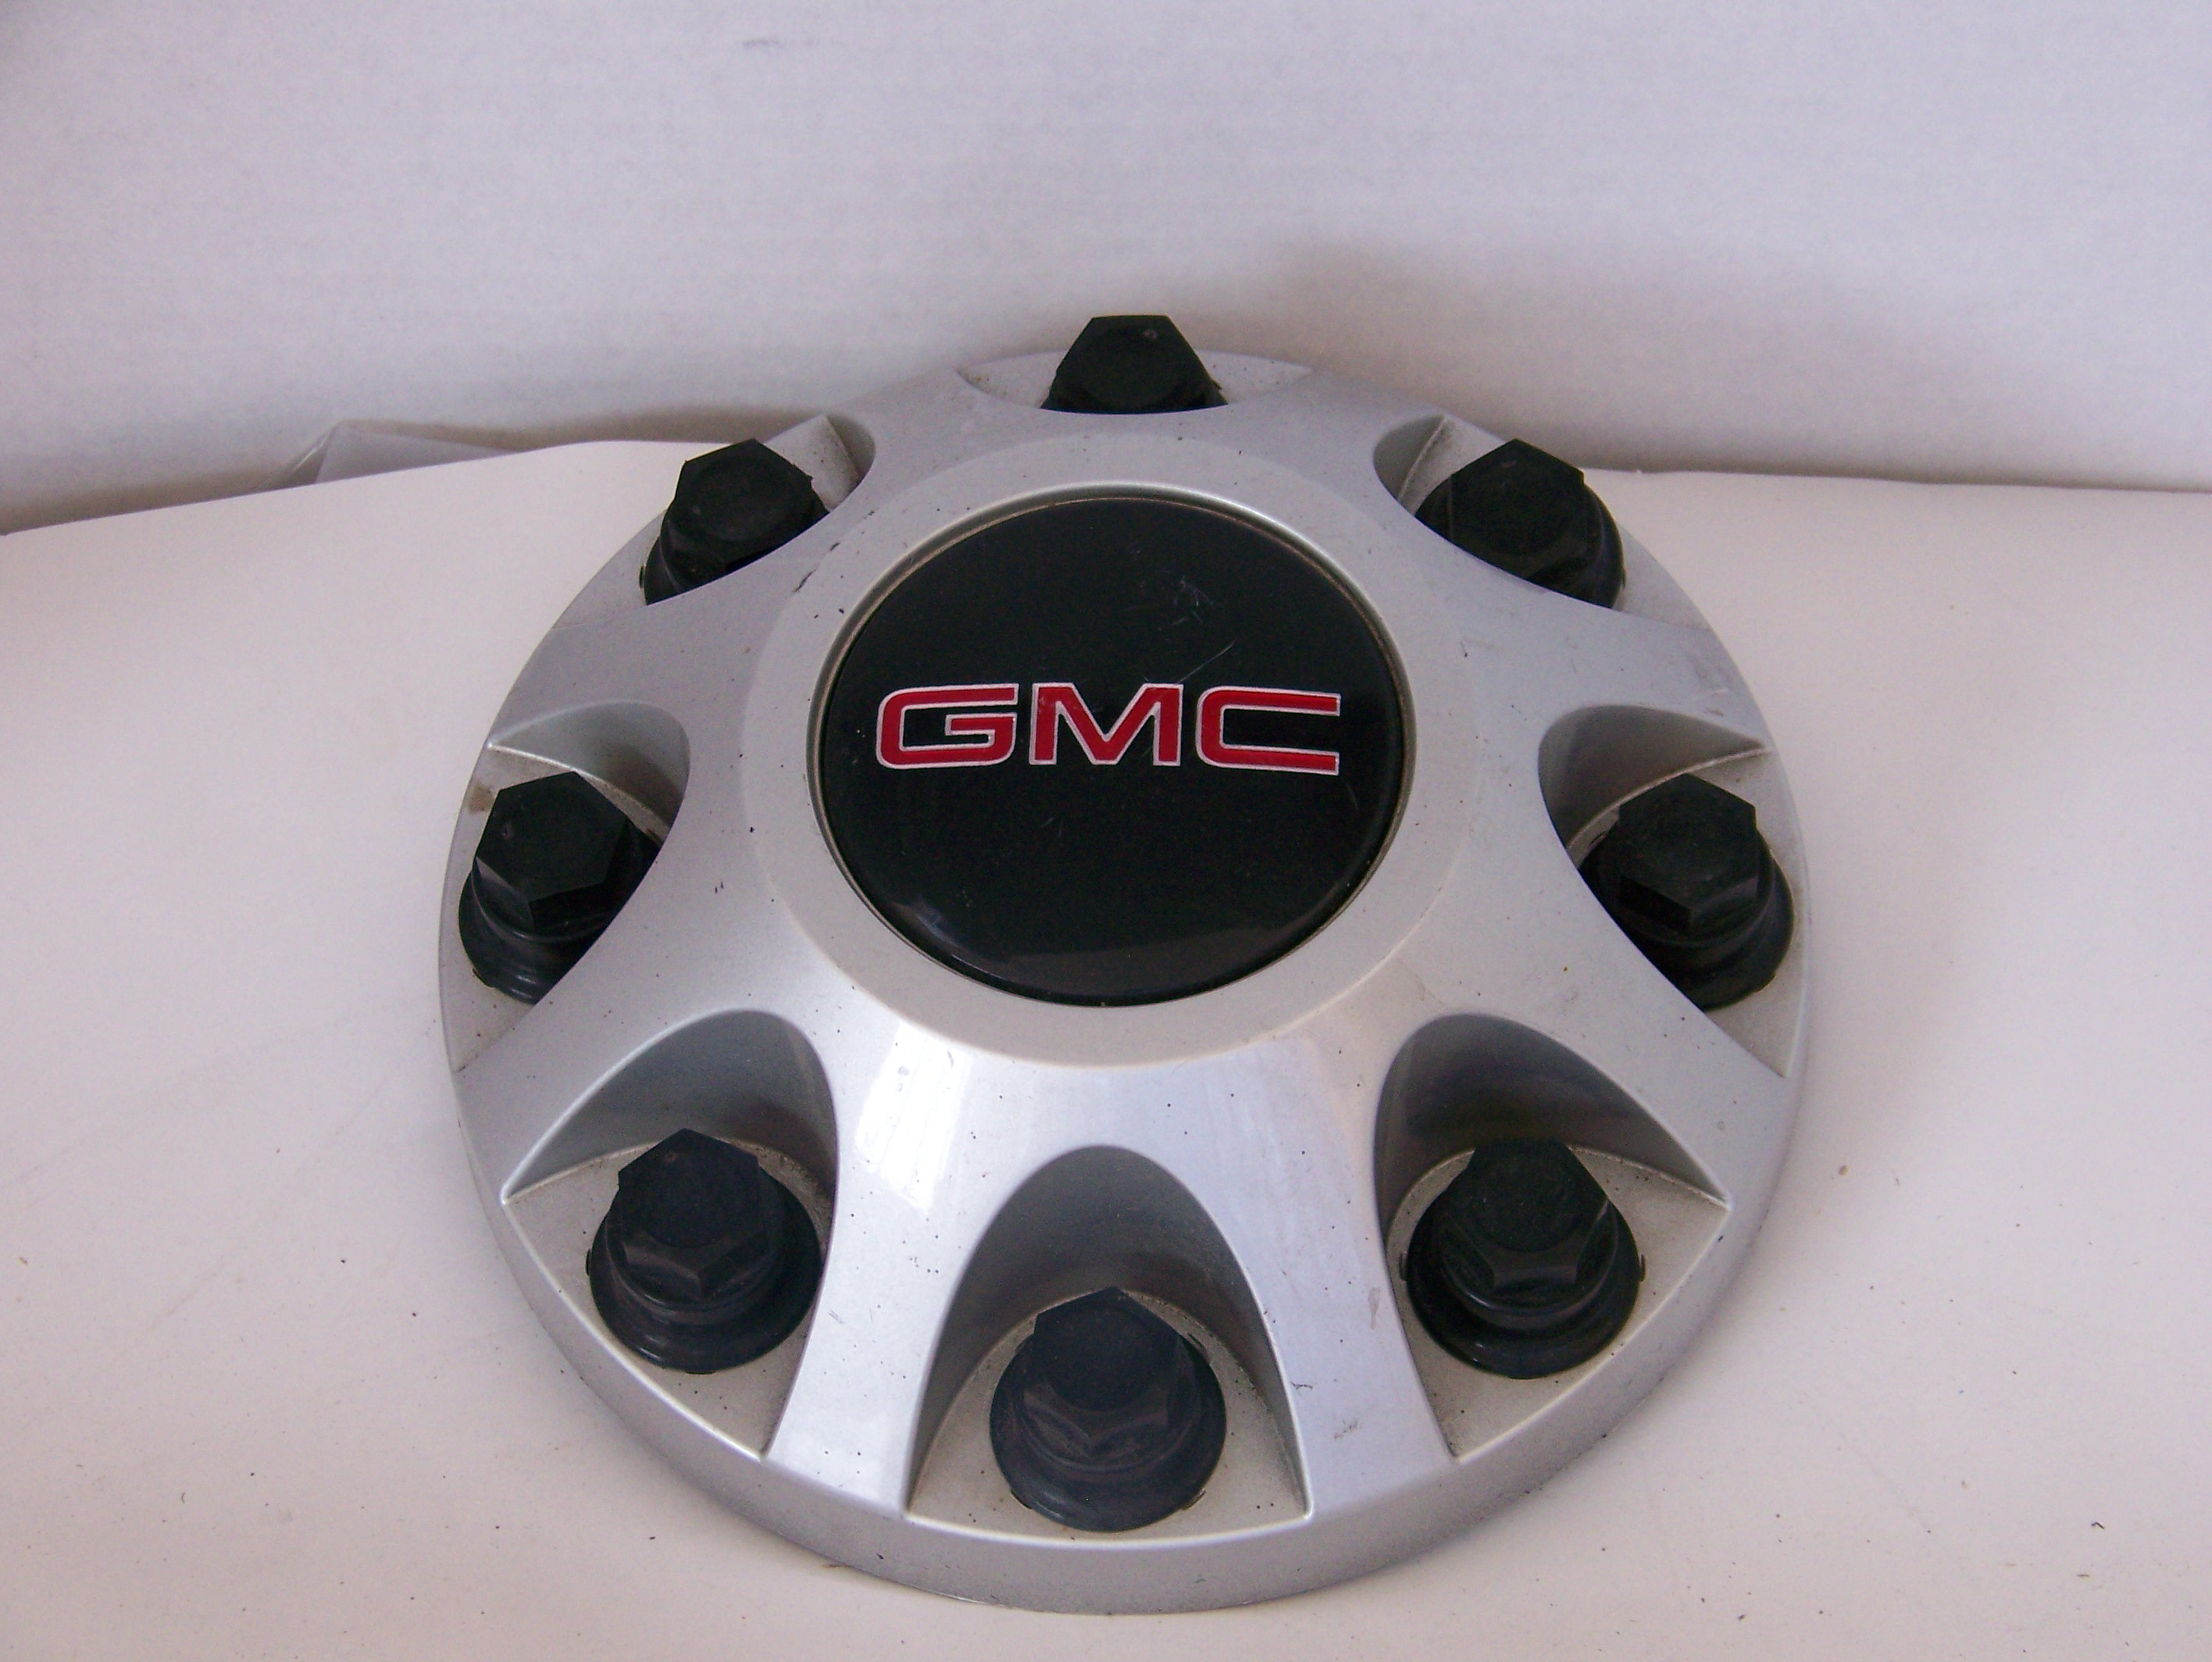 GMC Sierra 2500 11-17 Center Cap 8095 P/N 9597819